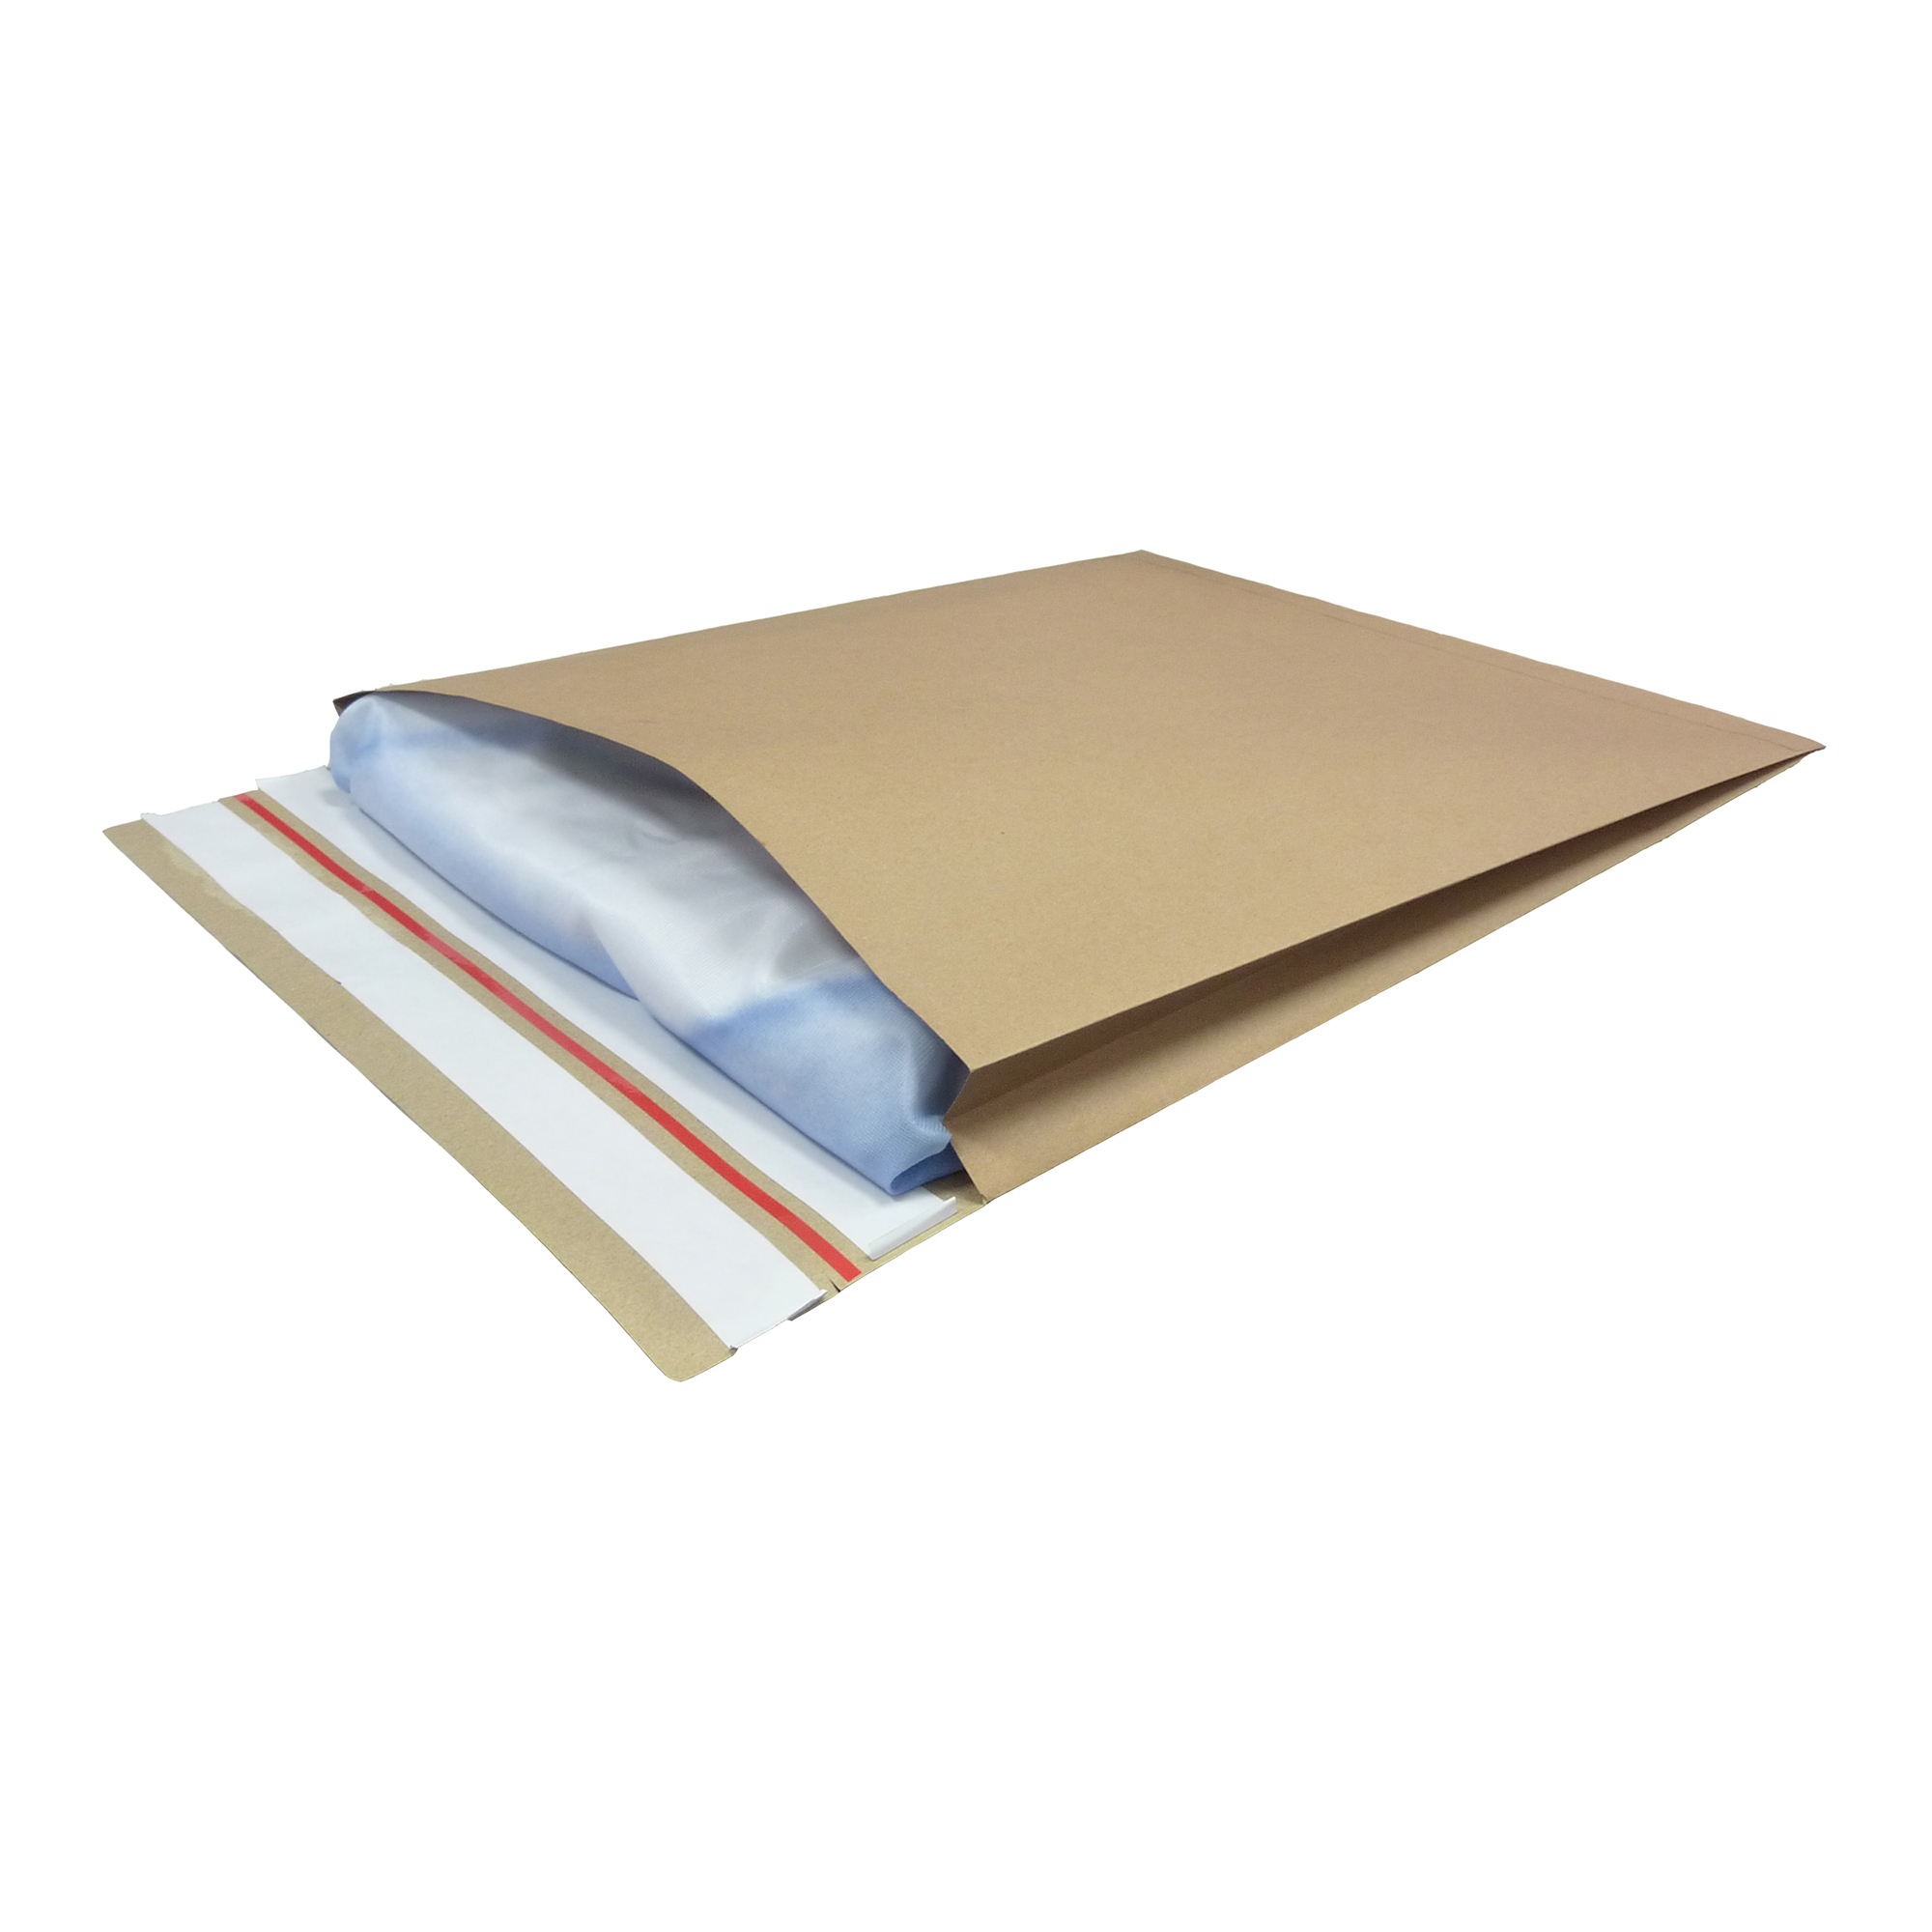 Standard envelopes Kraft Mailer Eco V Bottom & Side Gusset Double P&S 400x500x50mm +100 flap Manilla Ref RBL10533 Pack 50